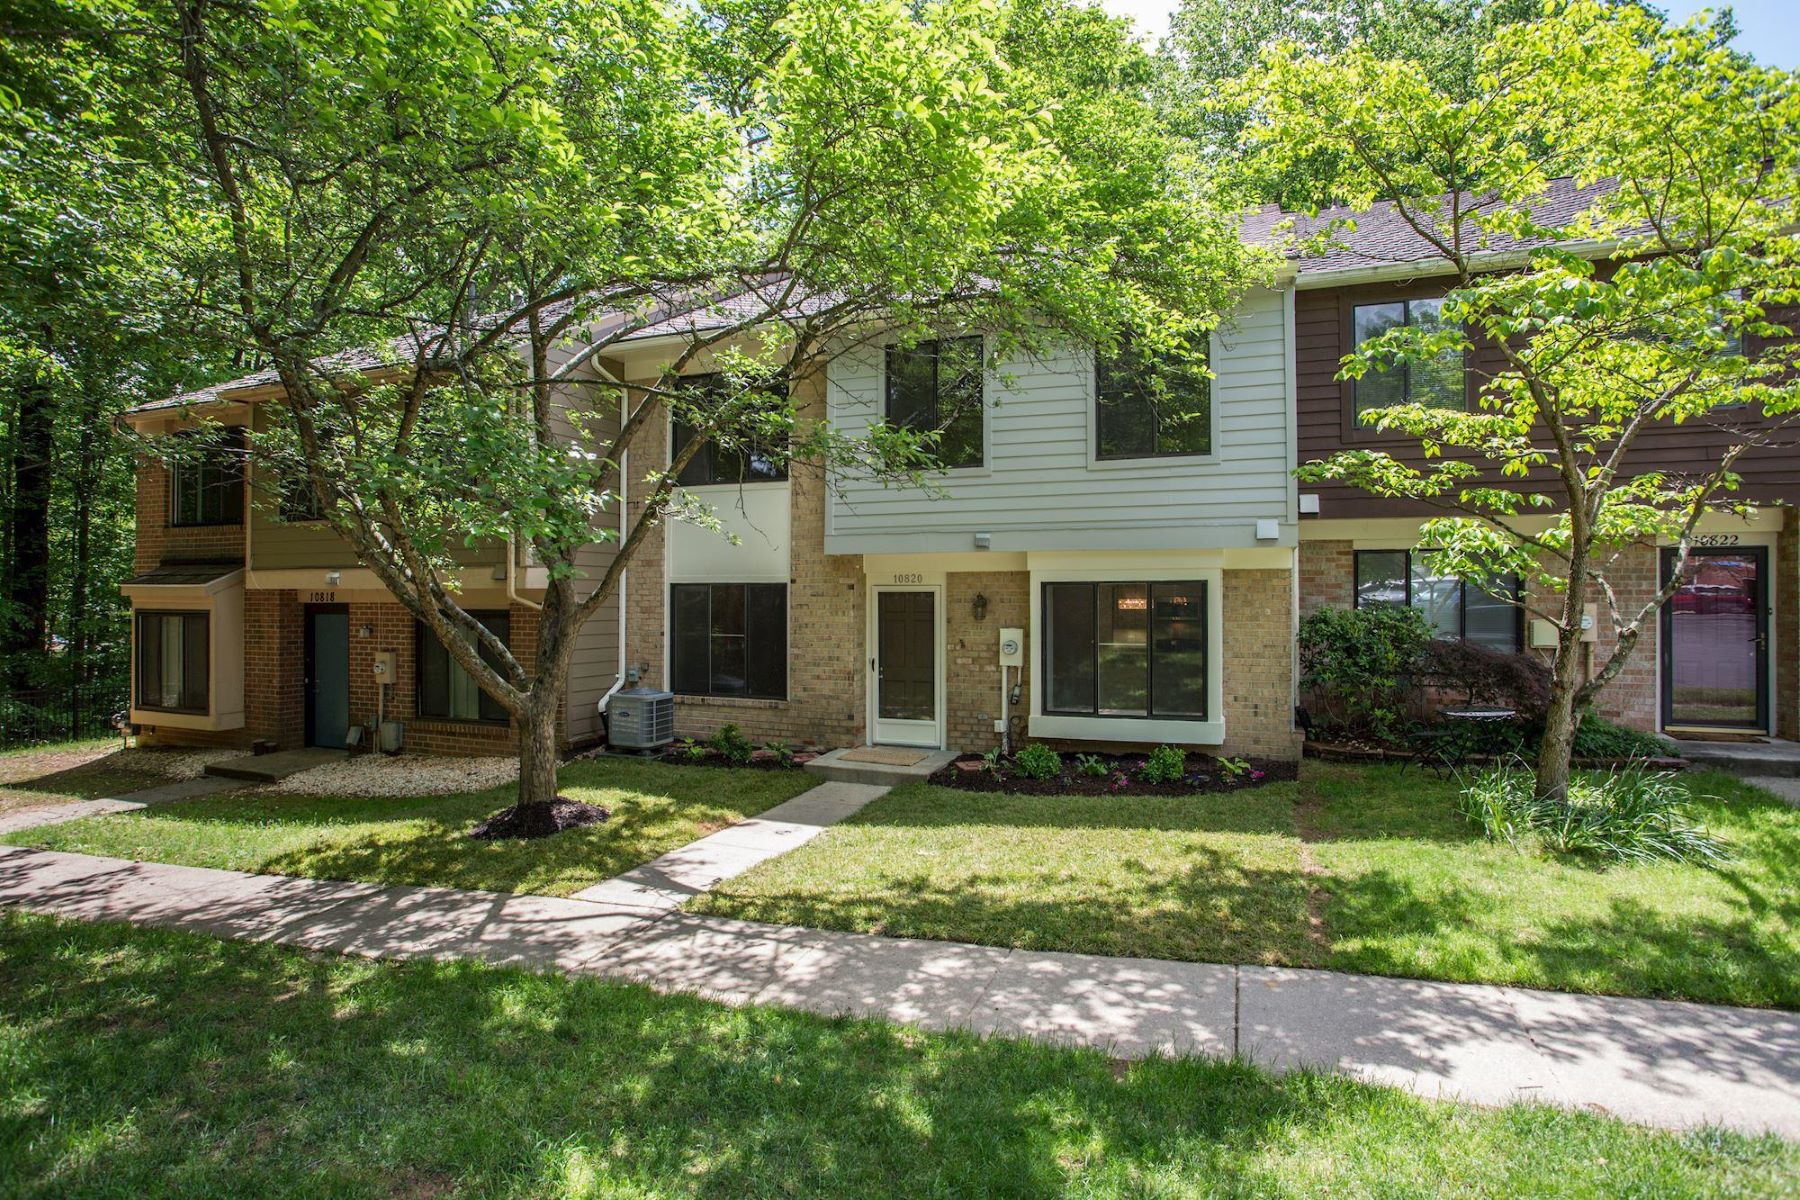 Townhouse for Sale at 10820 Whiterim Dr Potomac, Maryland 20854 United States